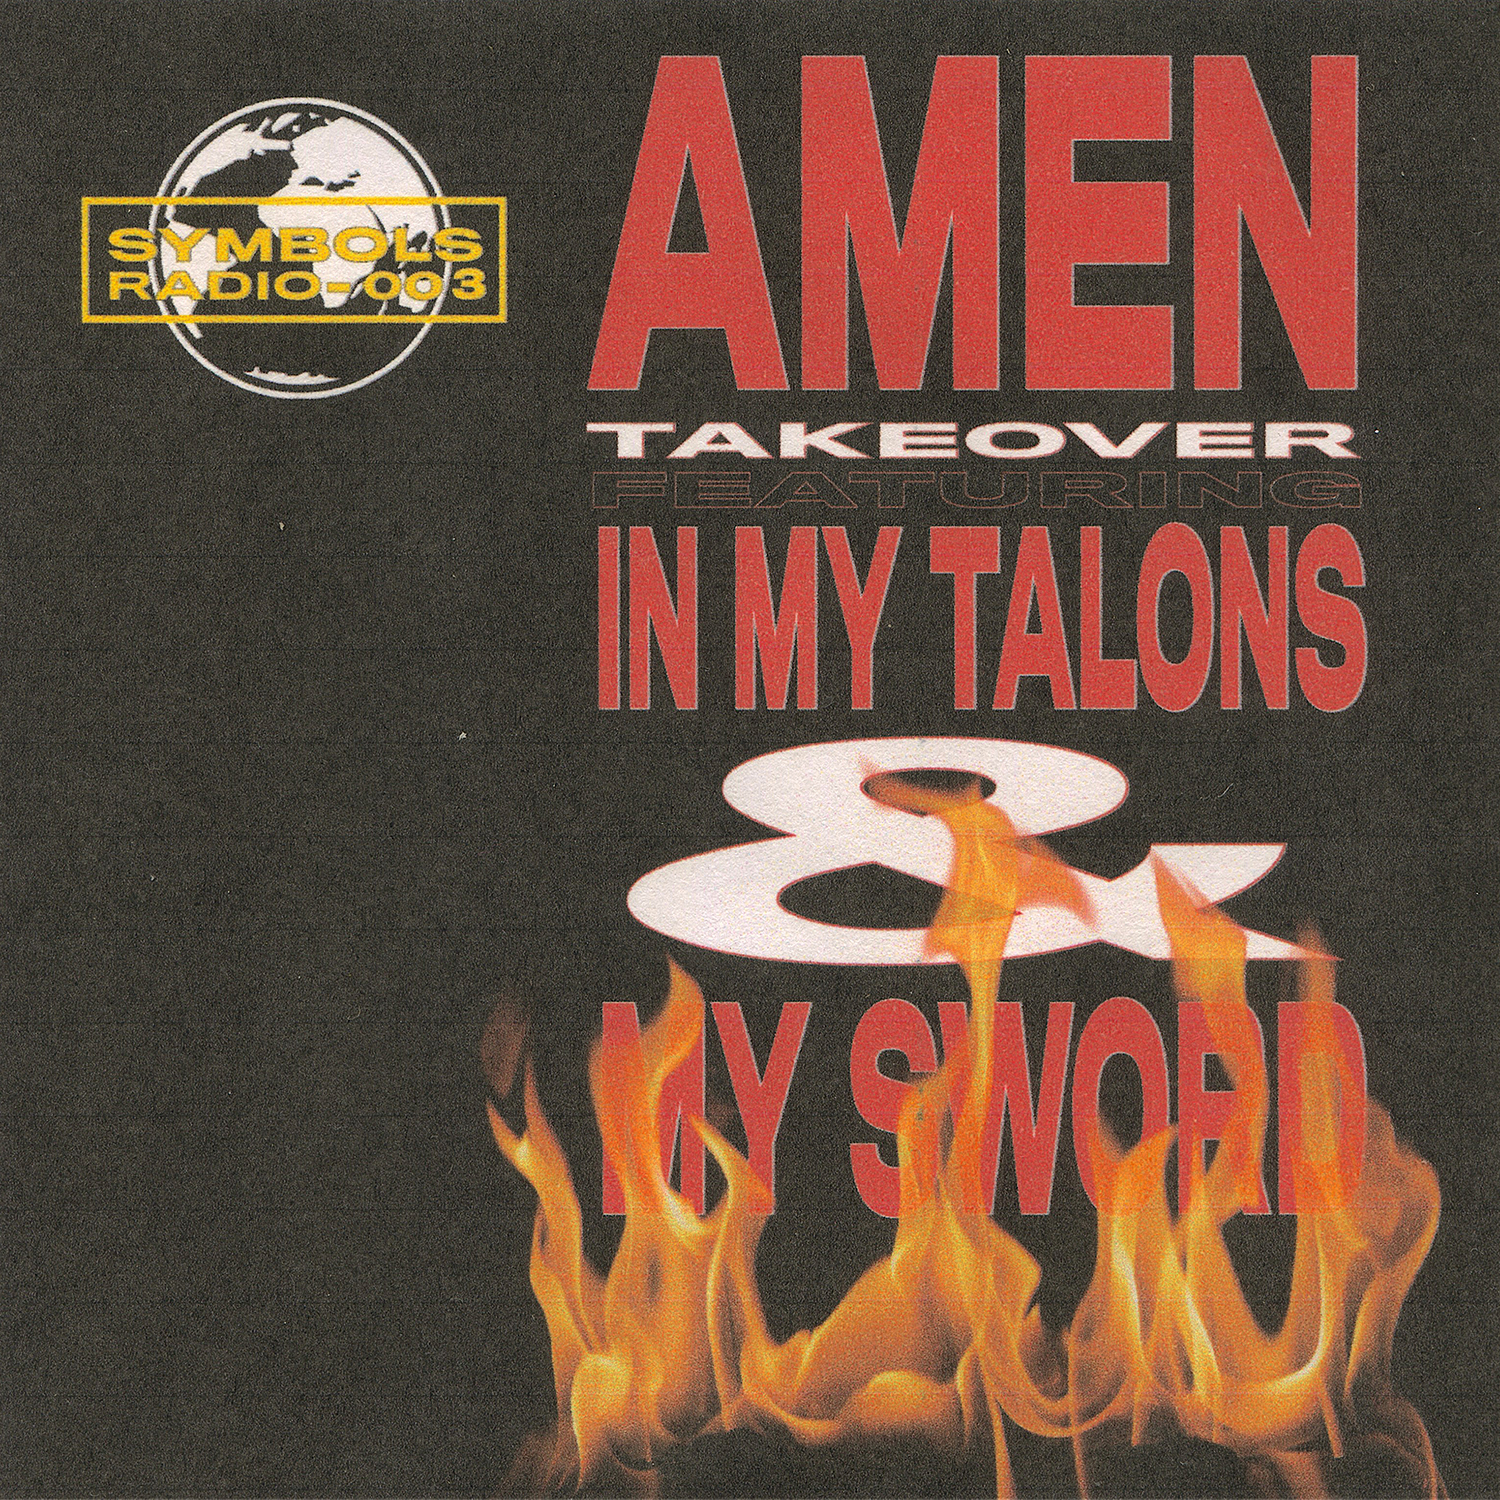 Symbols Radio 003 - AMEN Takeover ft In My Talons + My Sword - 1500x1500.jpg